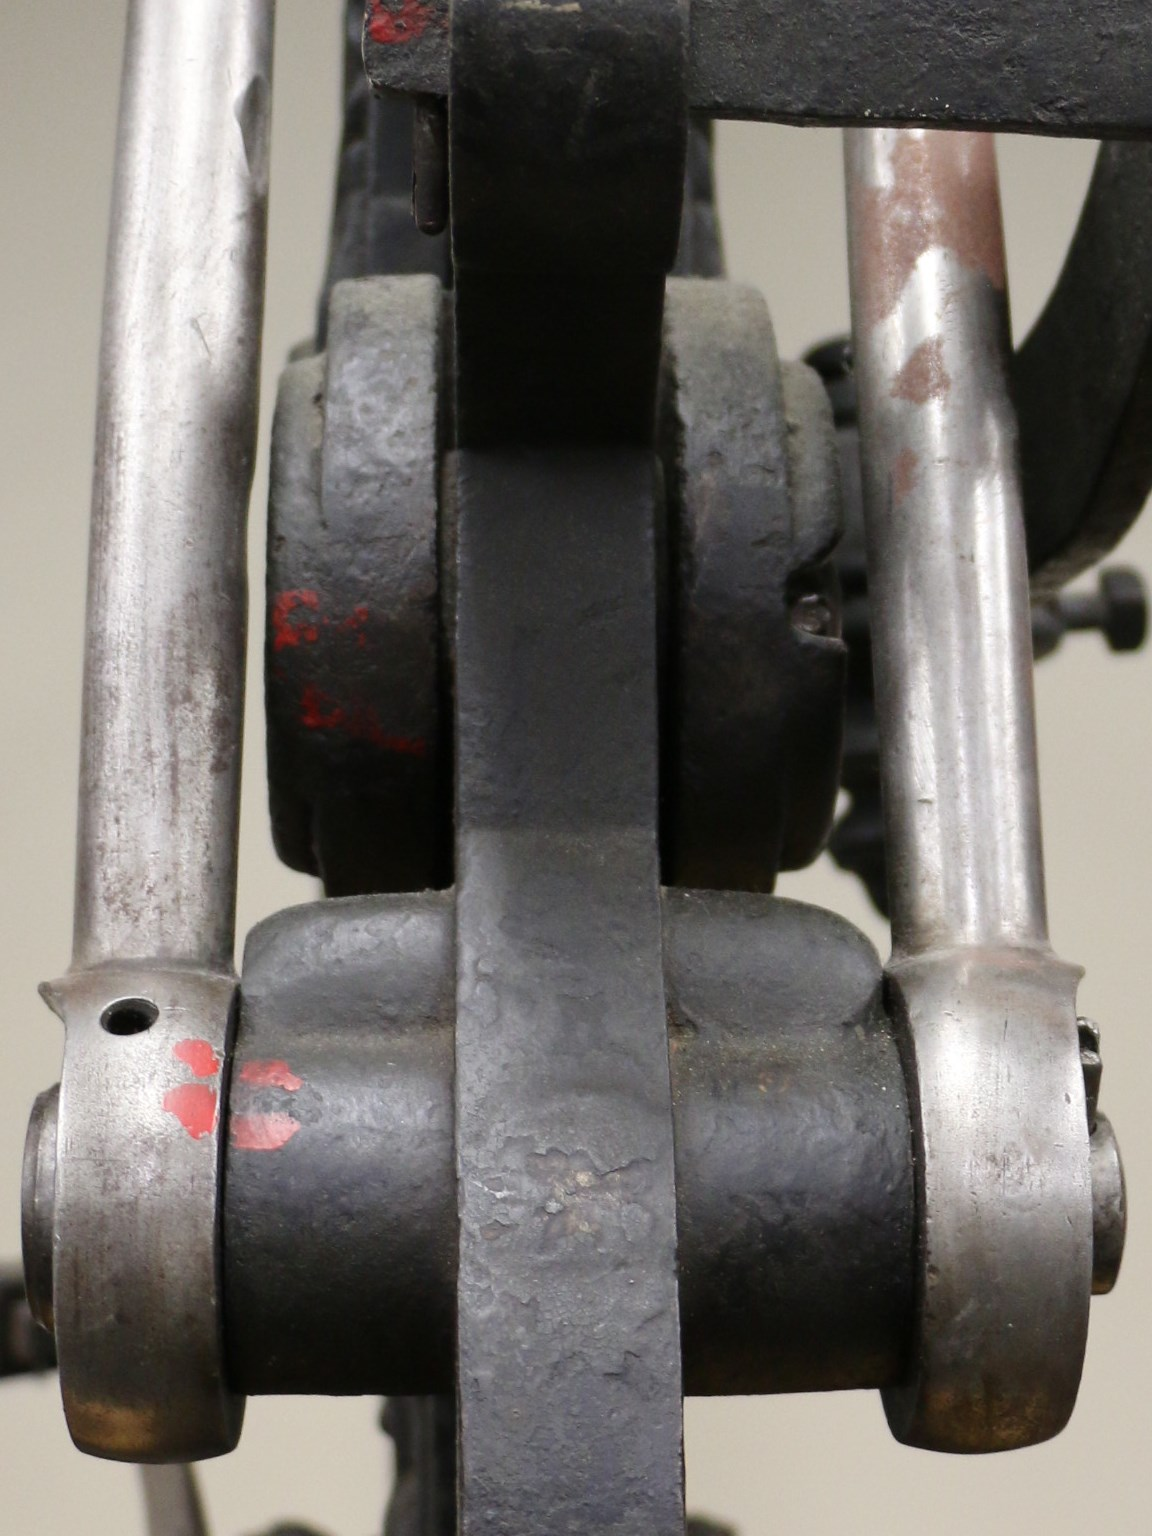 Close up view of the gears of a hand press